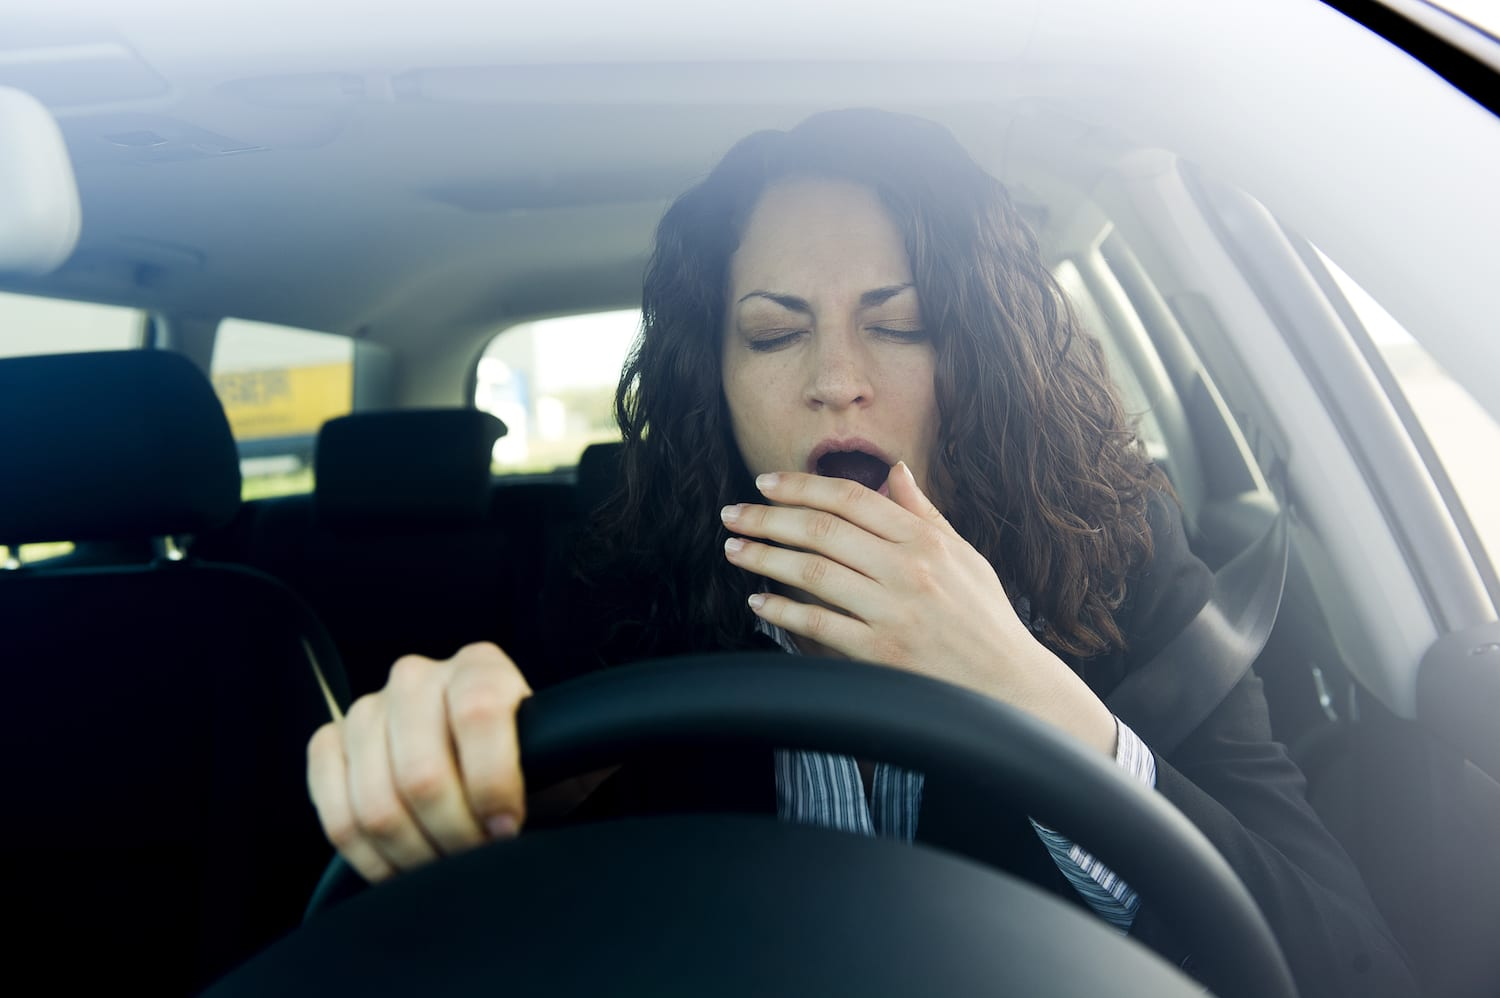 woman yawning while driving car